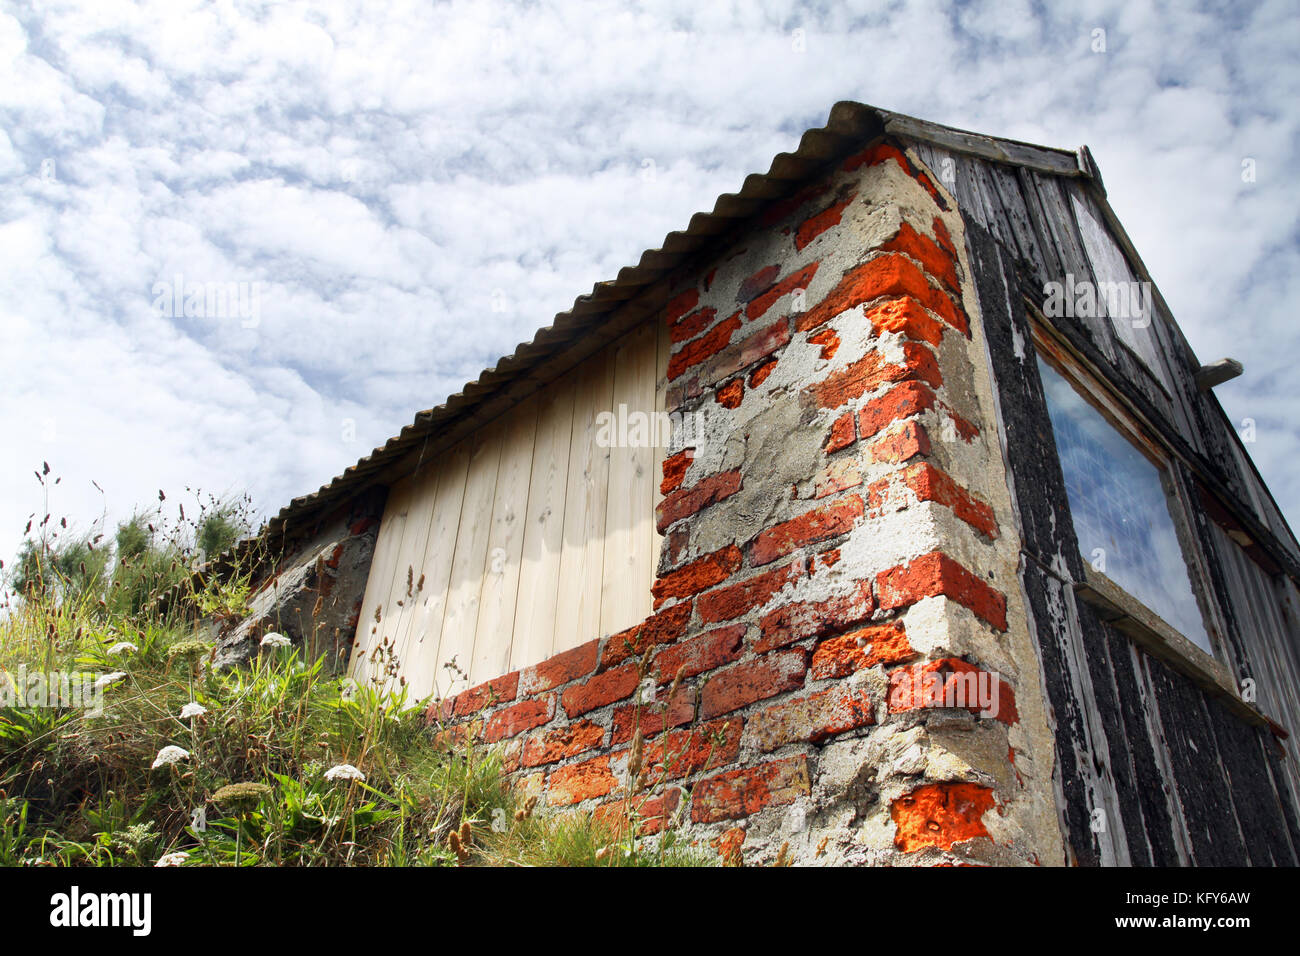 Red brick outbuilding or shed under cloudy sky - Stock Image